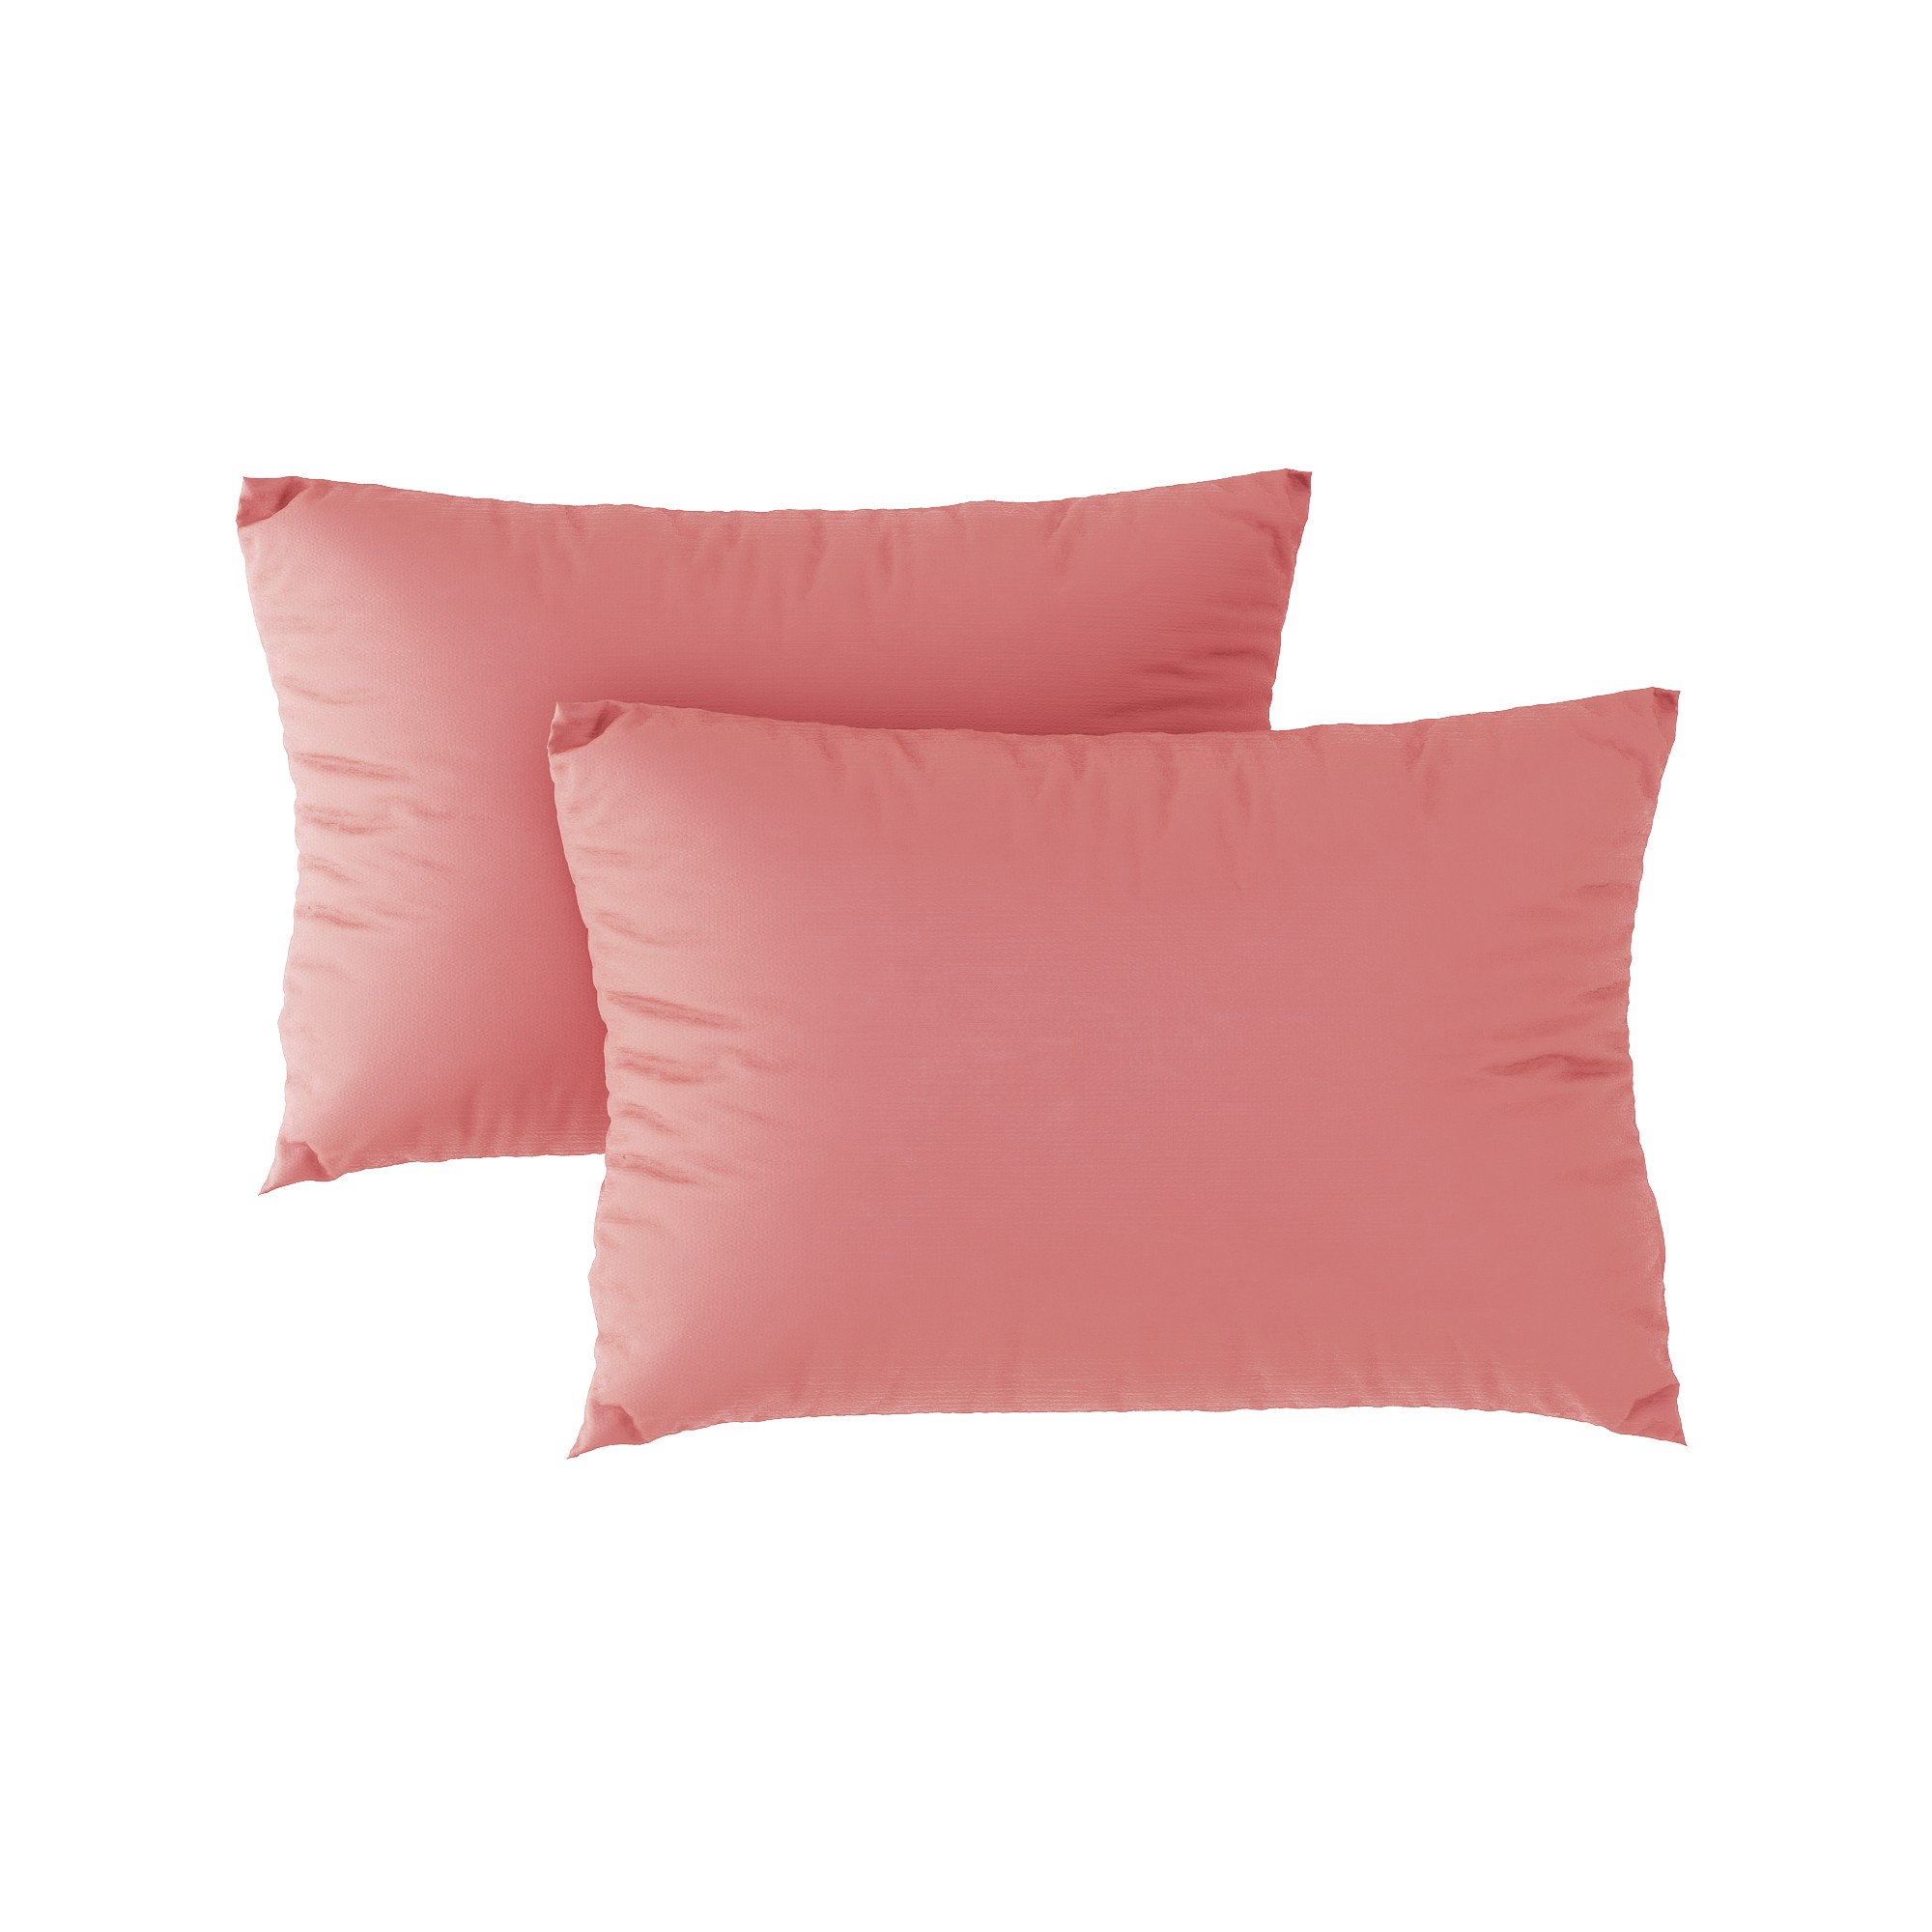 Premium pillow case 16 Dusty rose (2pcs)